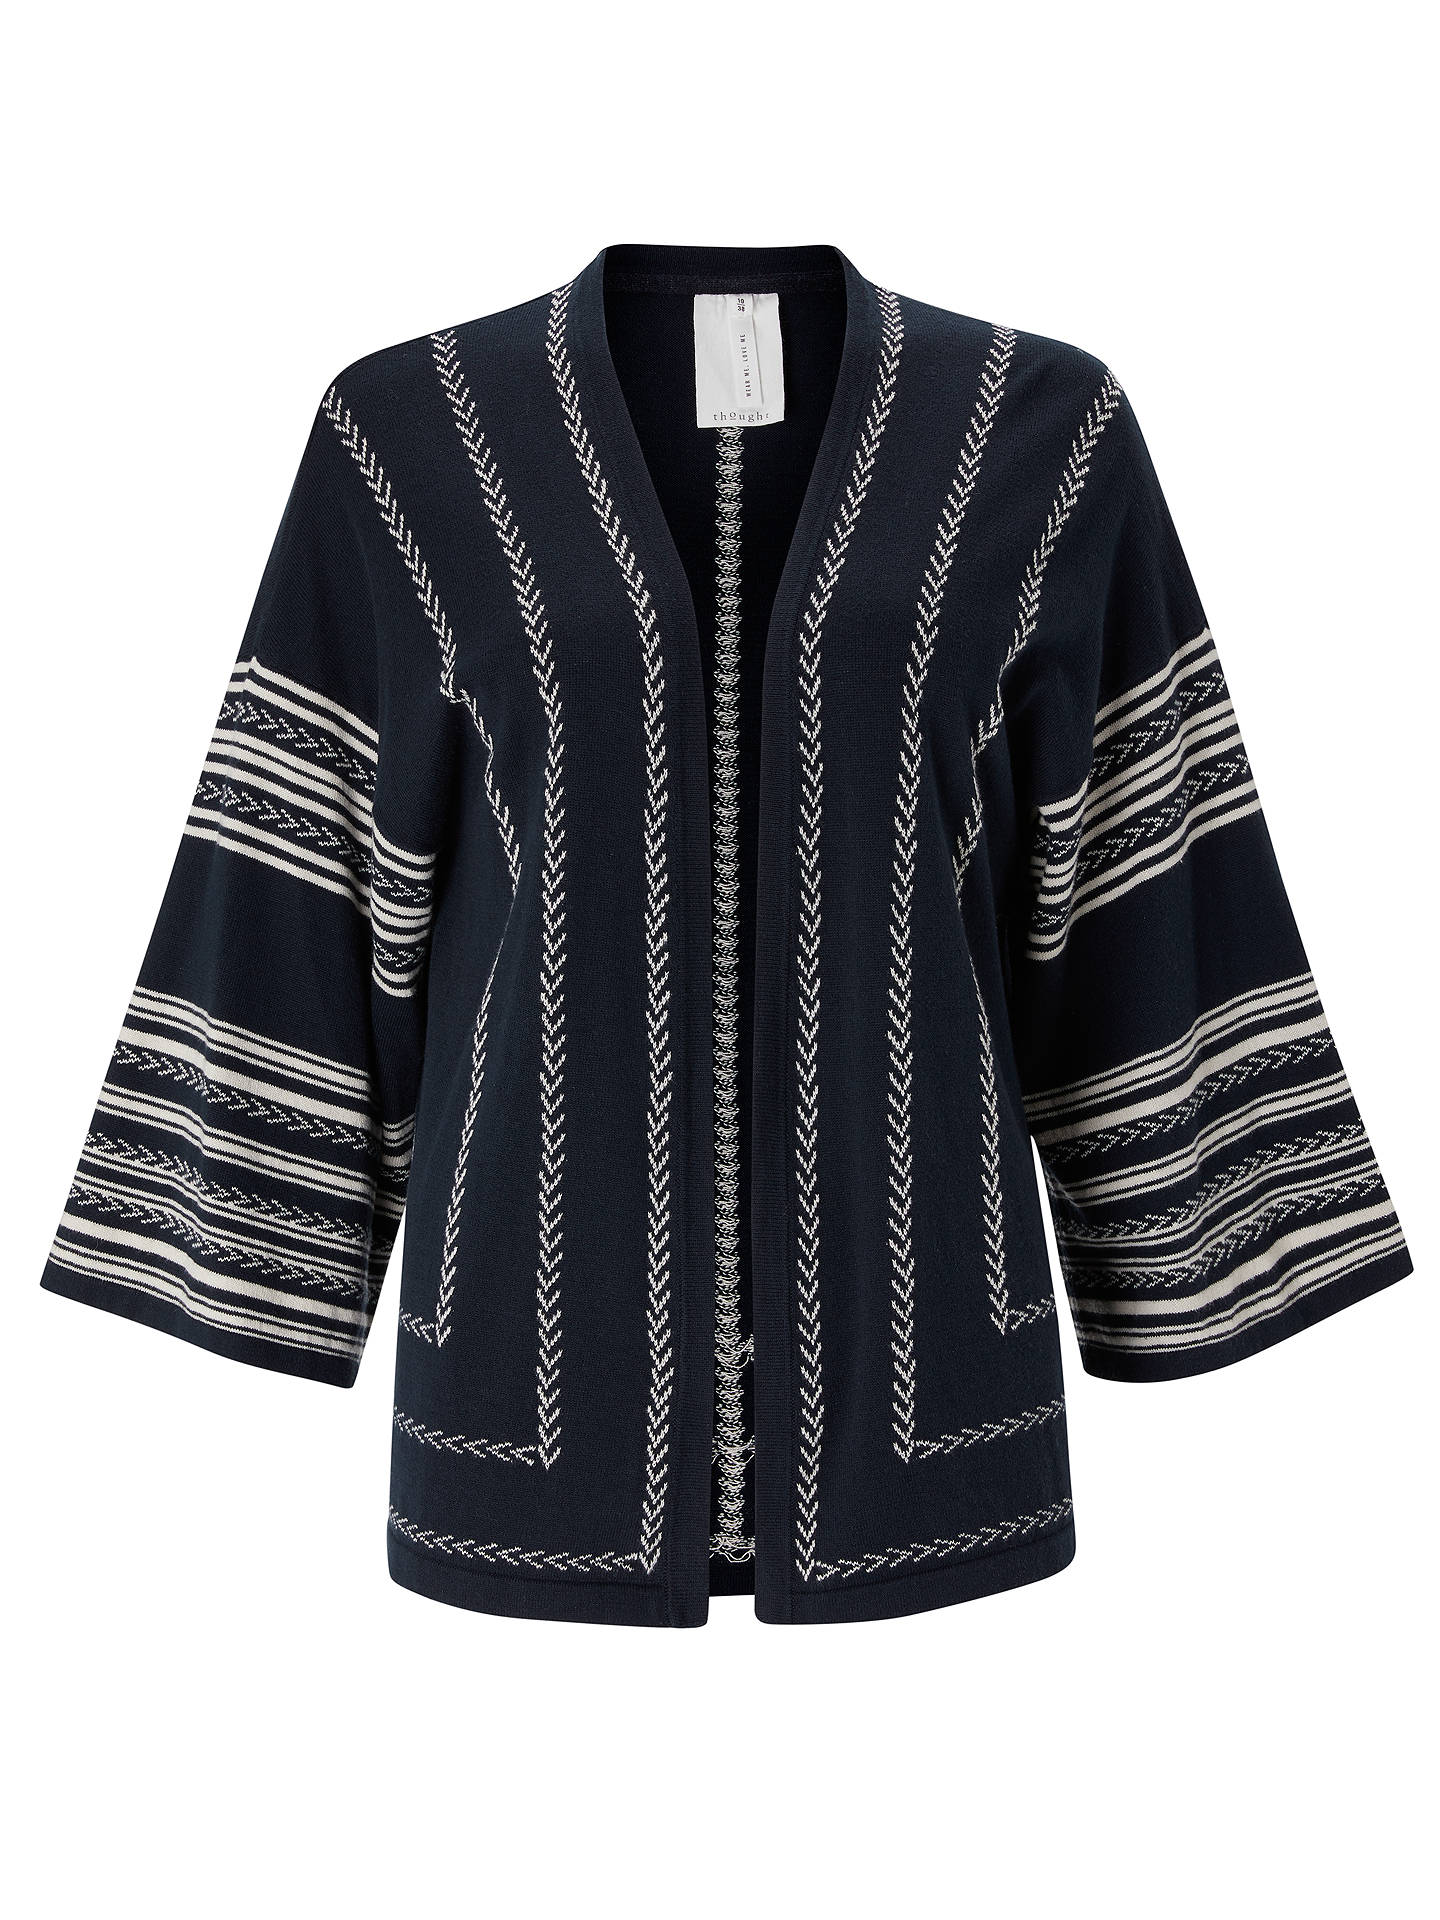 BuyThought Merewen Cardigan, Navy, 8 Online at johnlewis.com